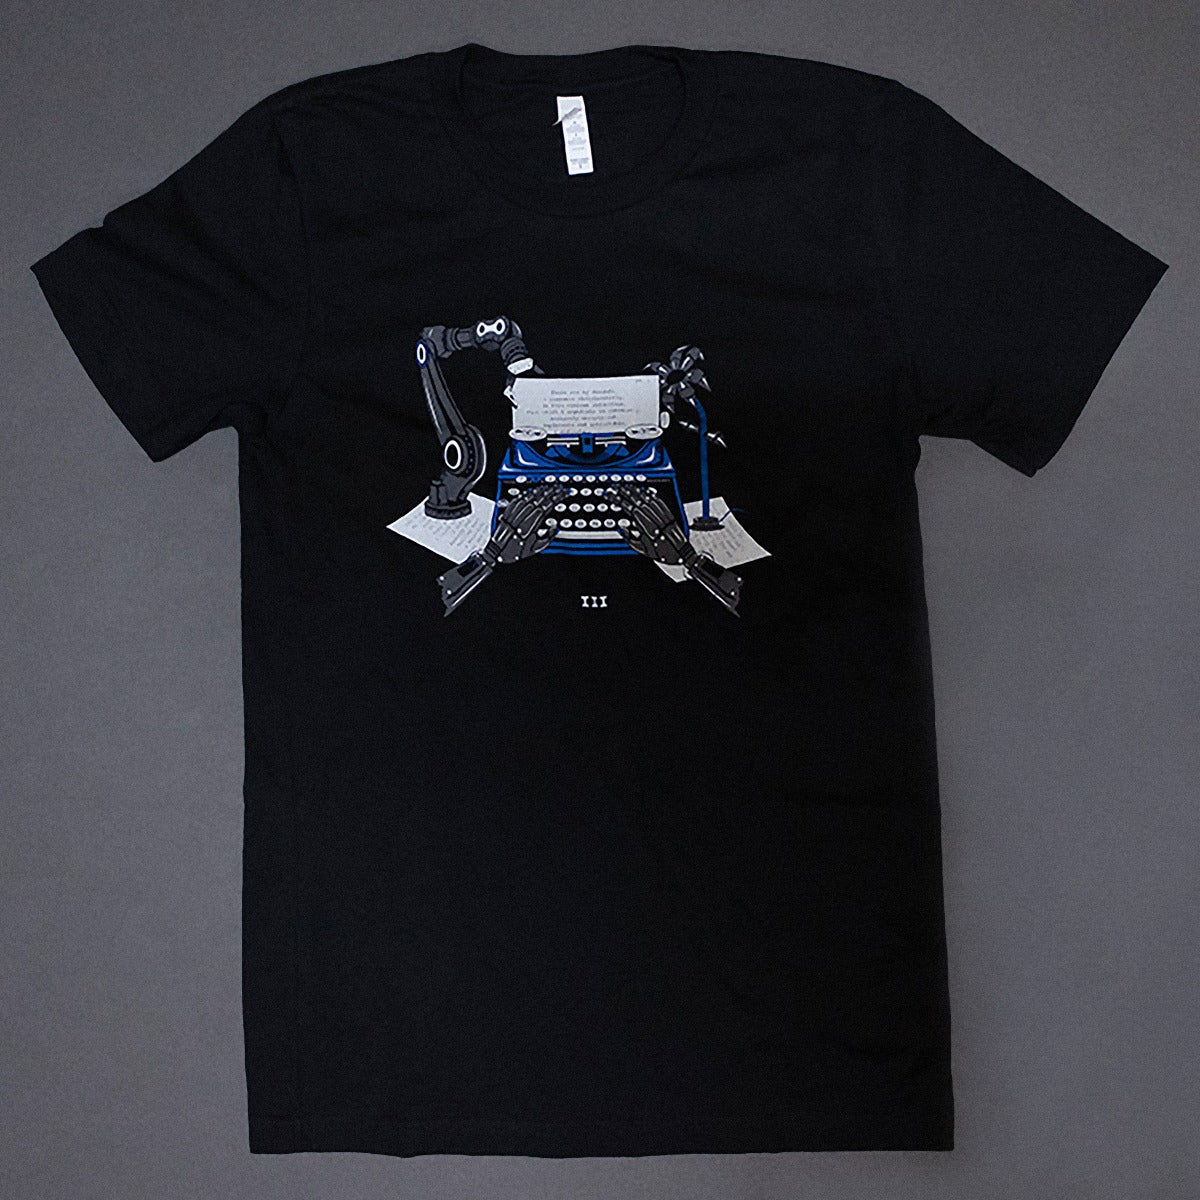 Boarding House Reach Typewriter T-Shirt